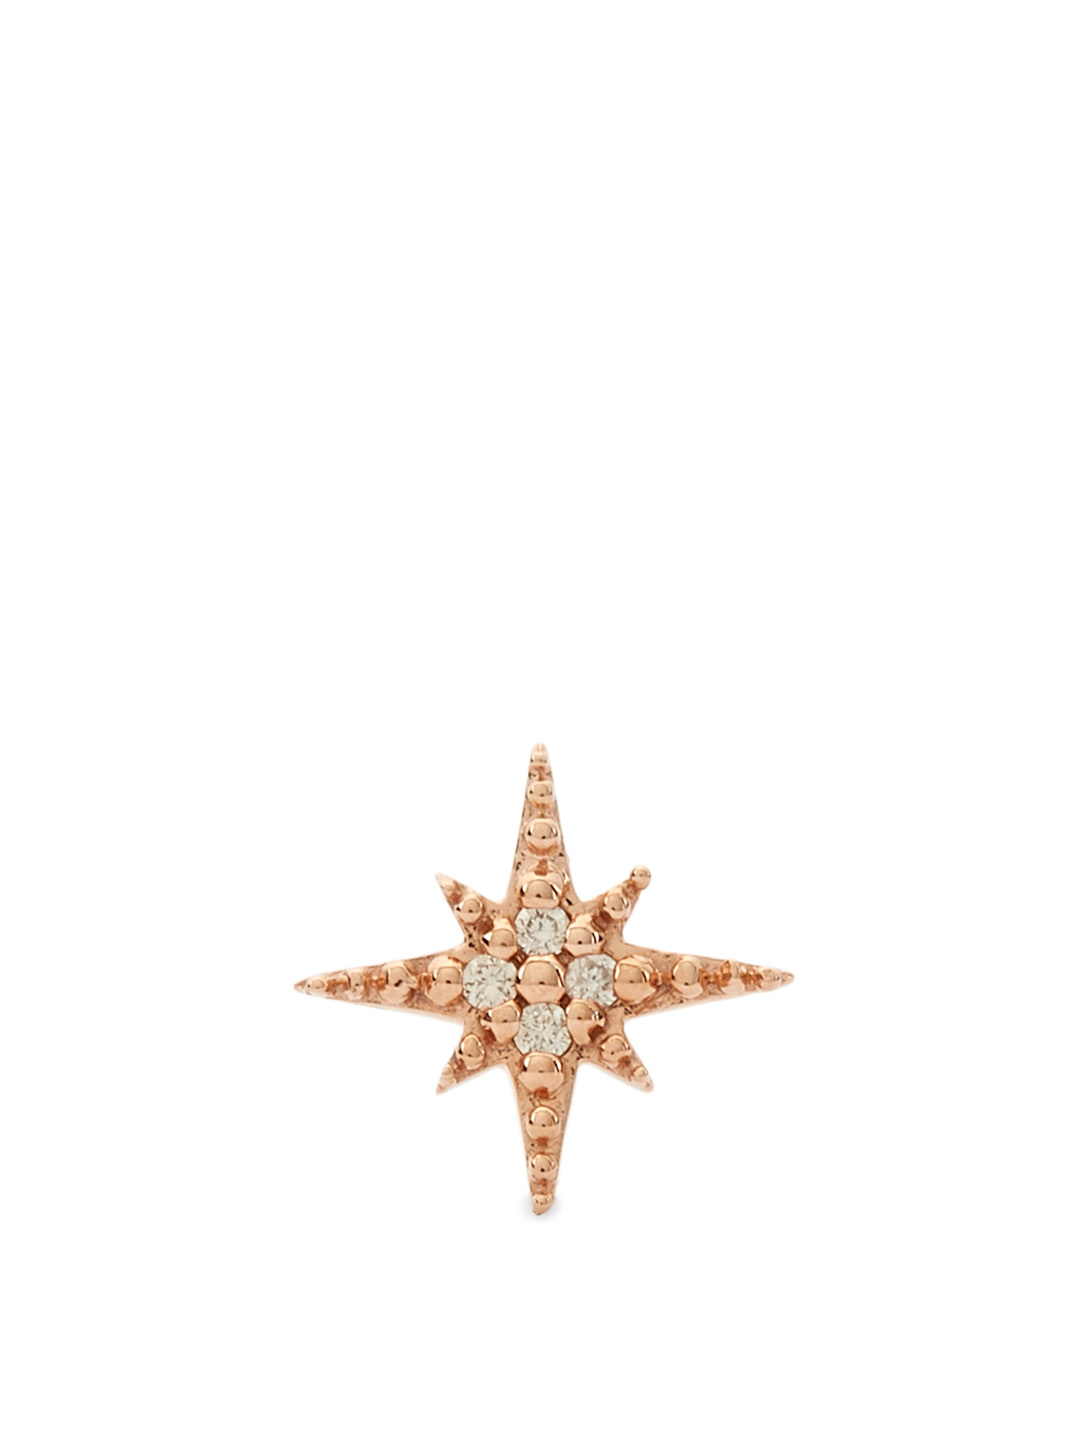 SYDNEY EVAN Mini 14K Rose Gold Starburst Stud Earring With Diamonds Women's Metallic